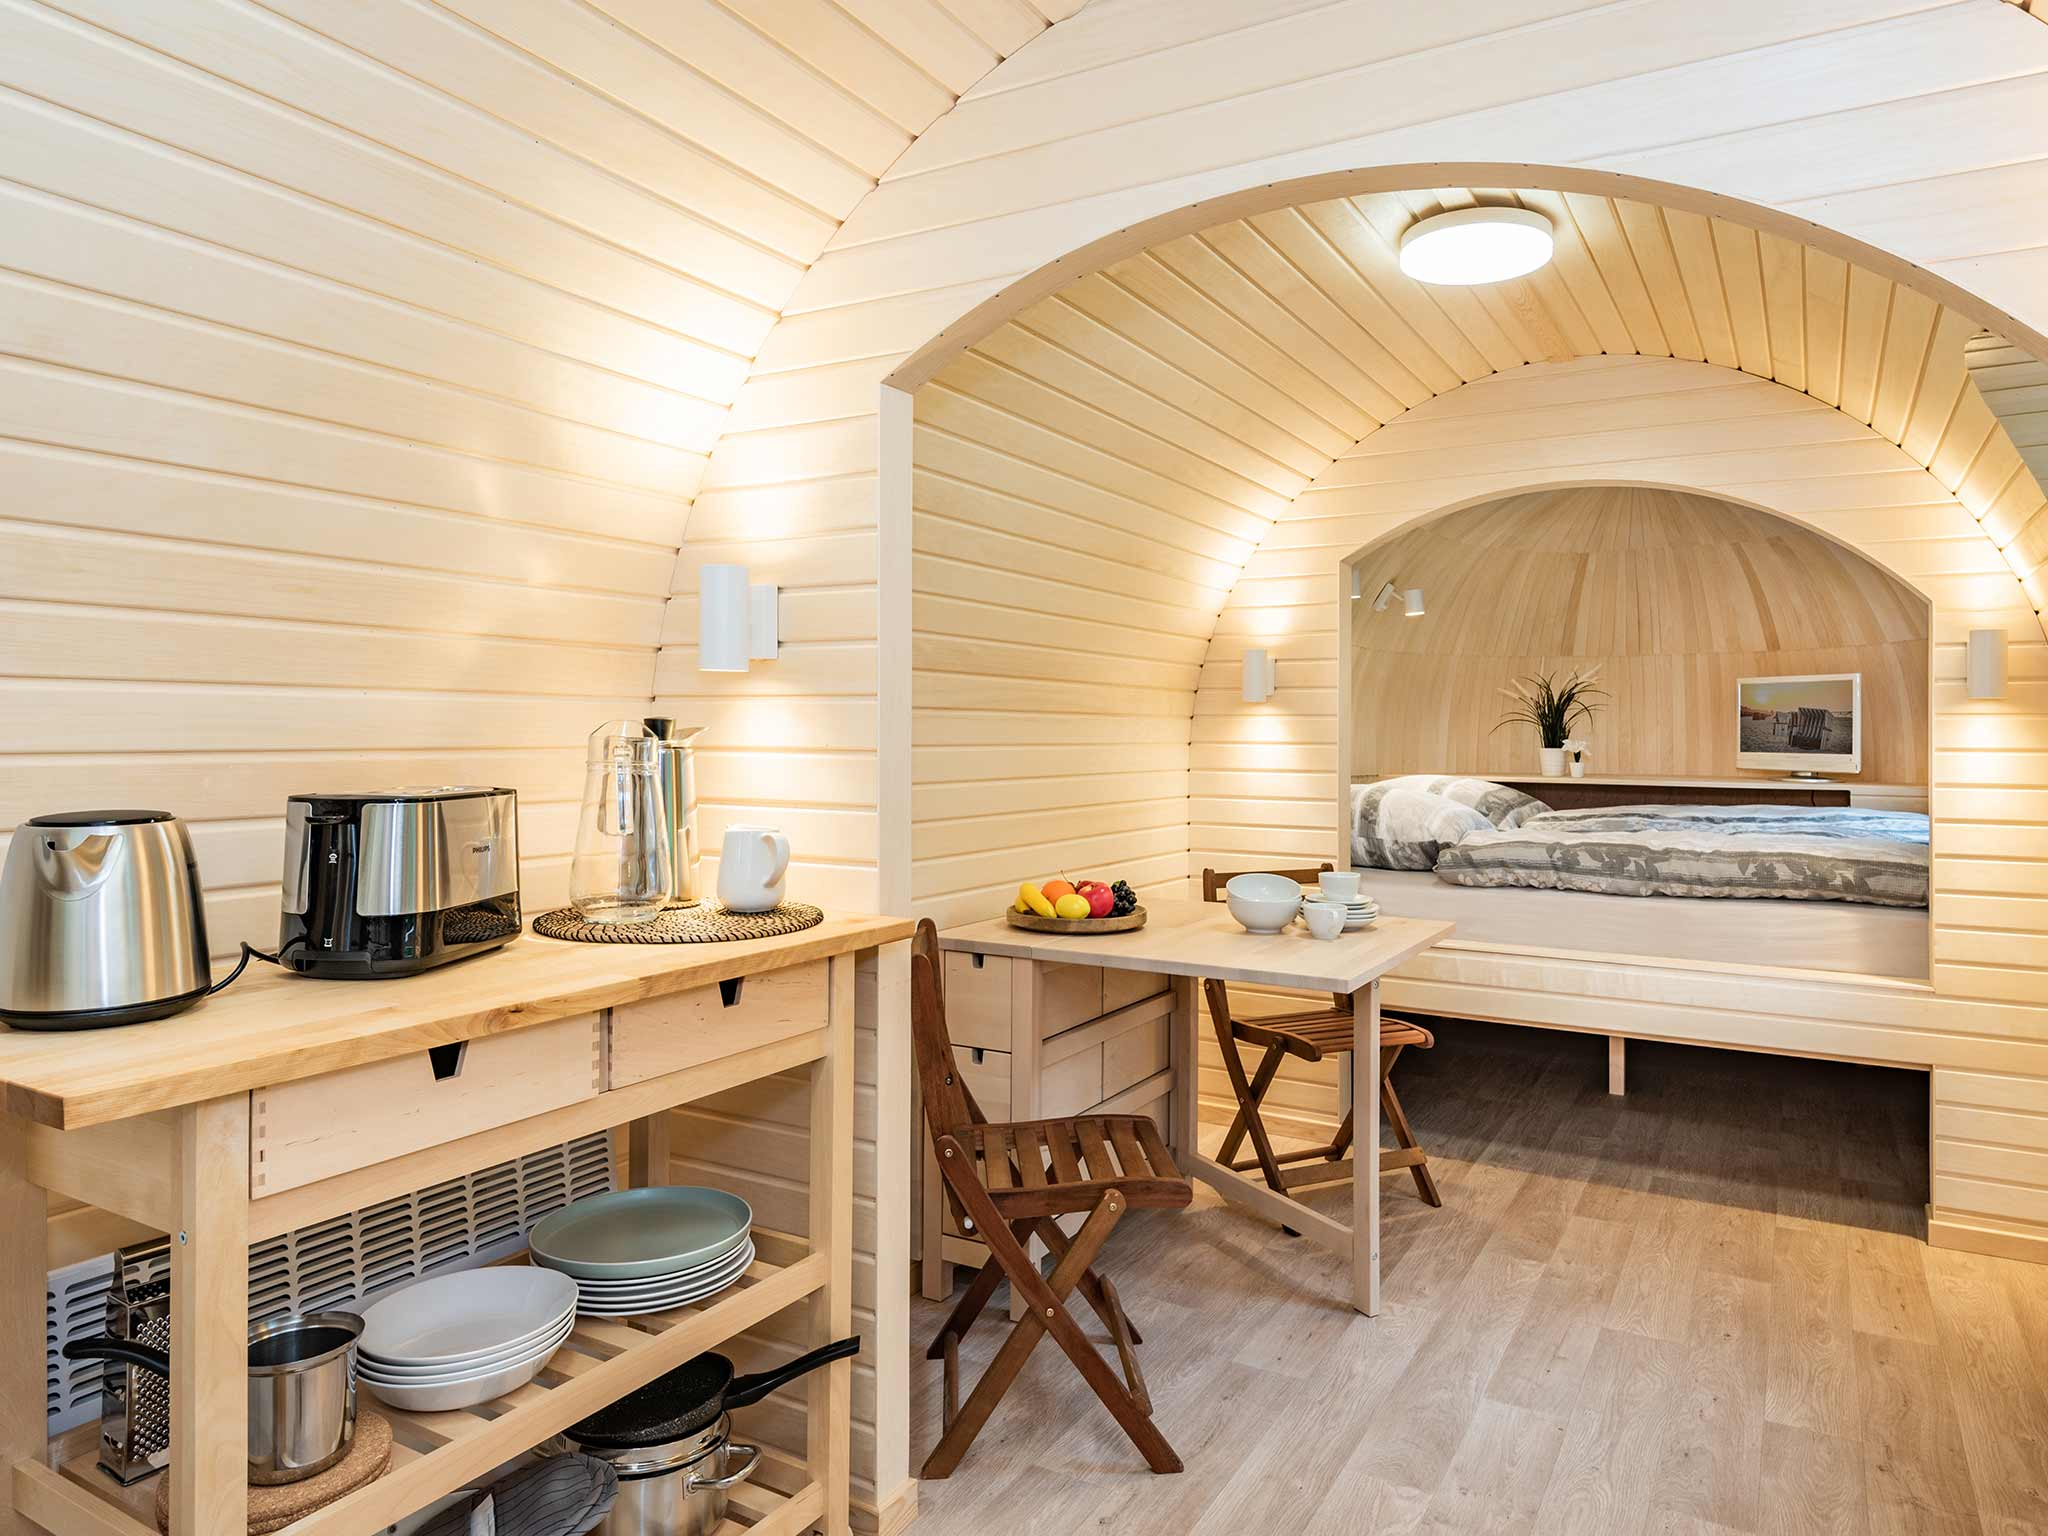 Tiny House Ostsee Usedom Bansin Wohnbereich